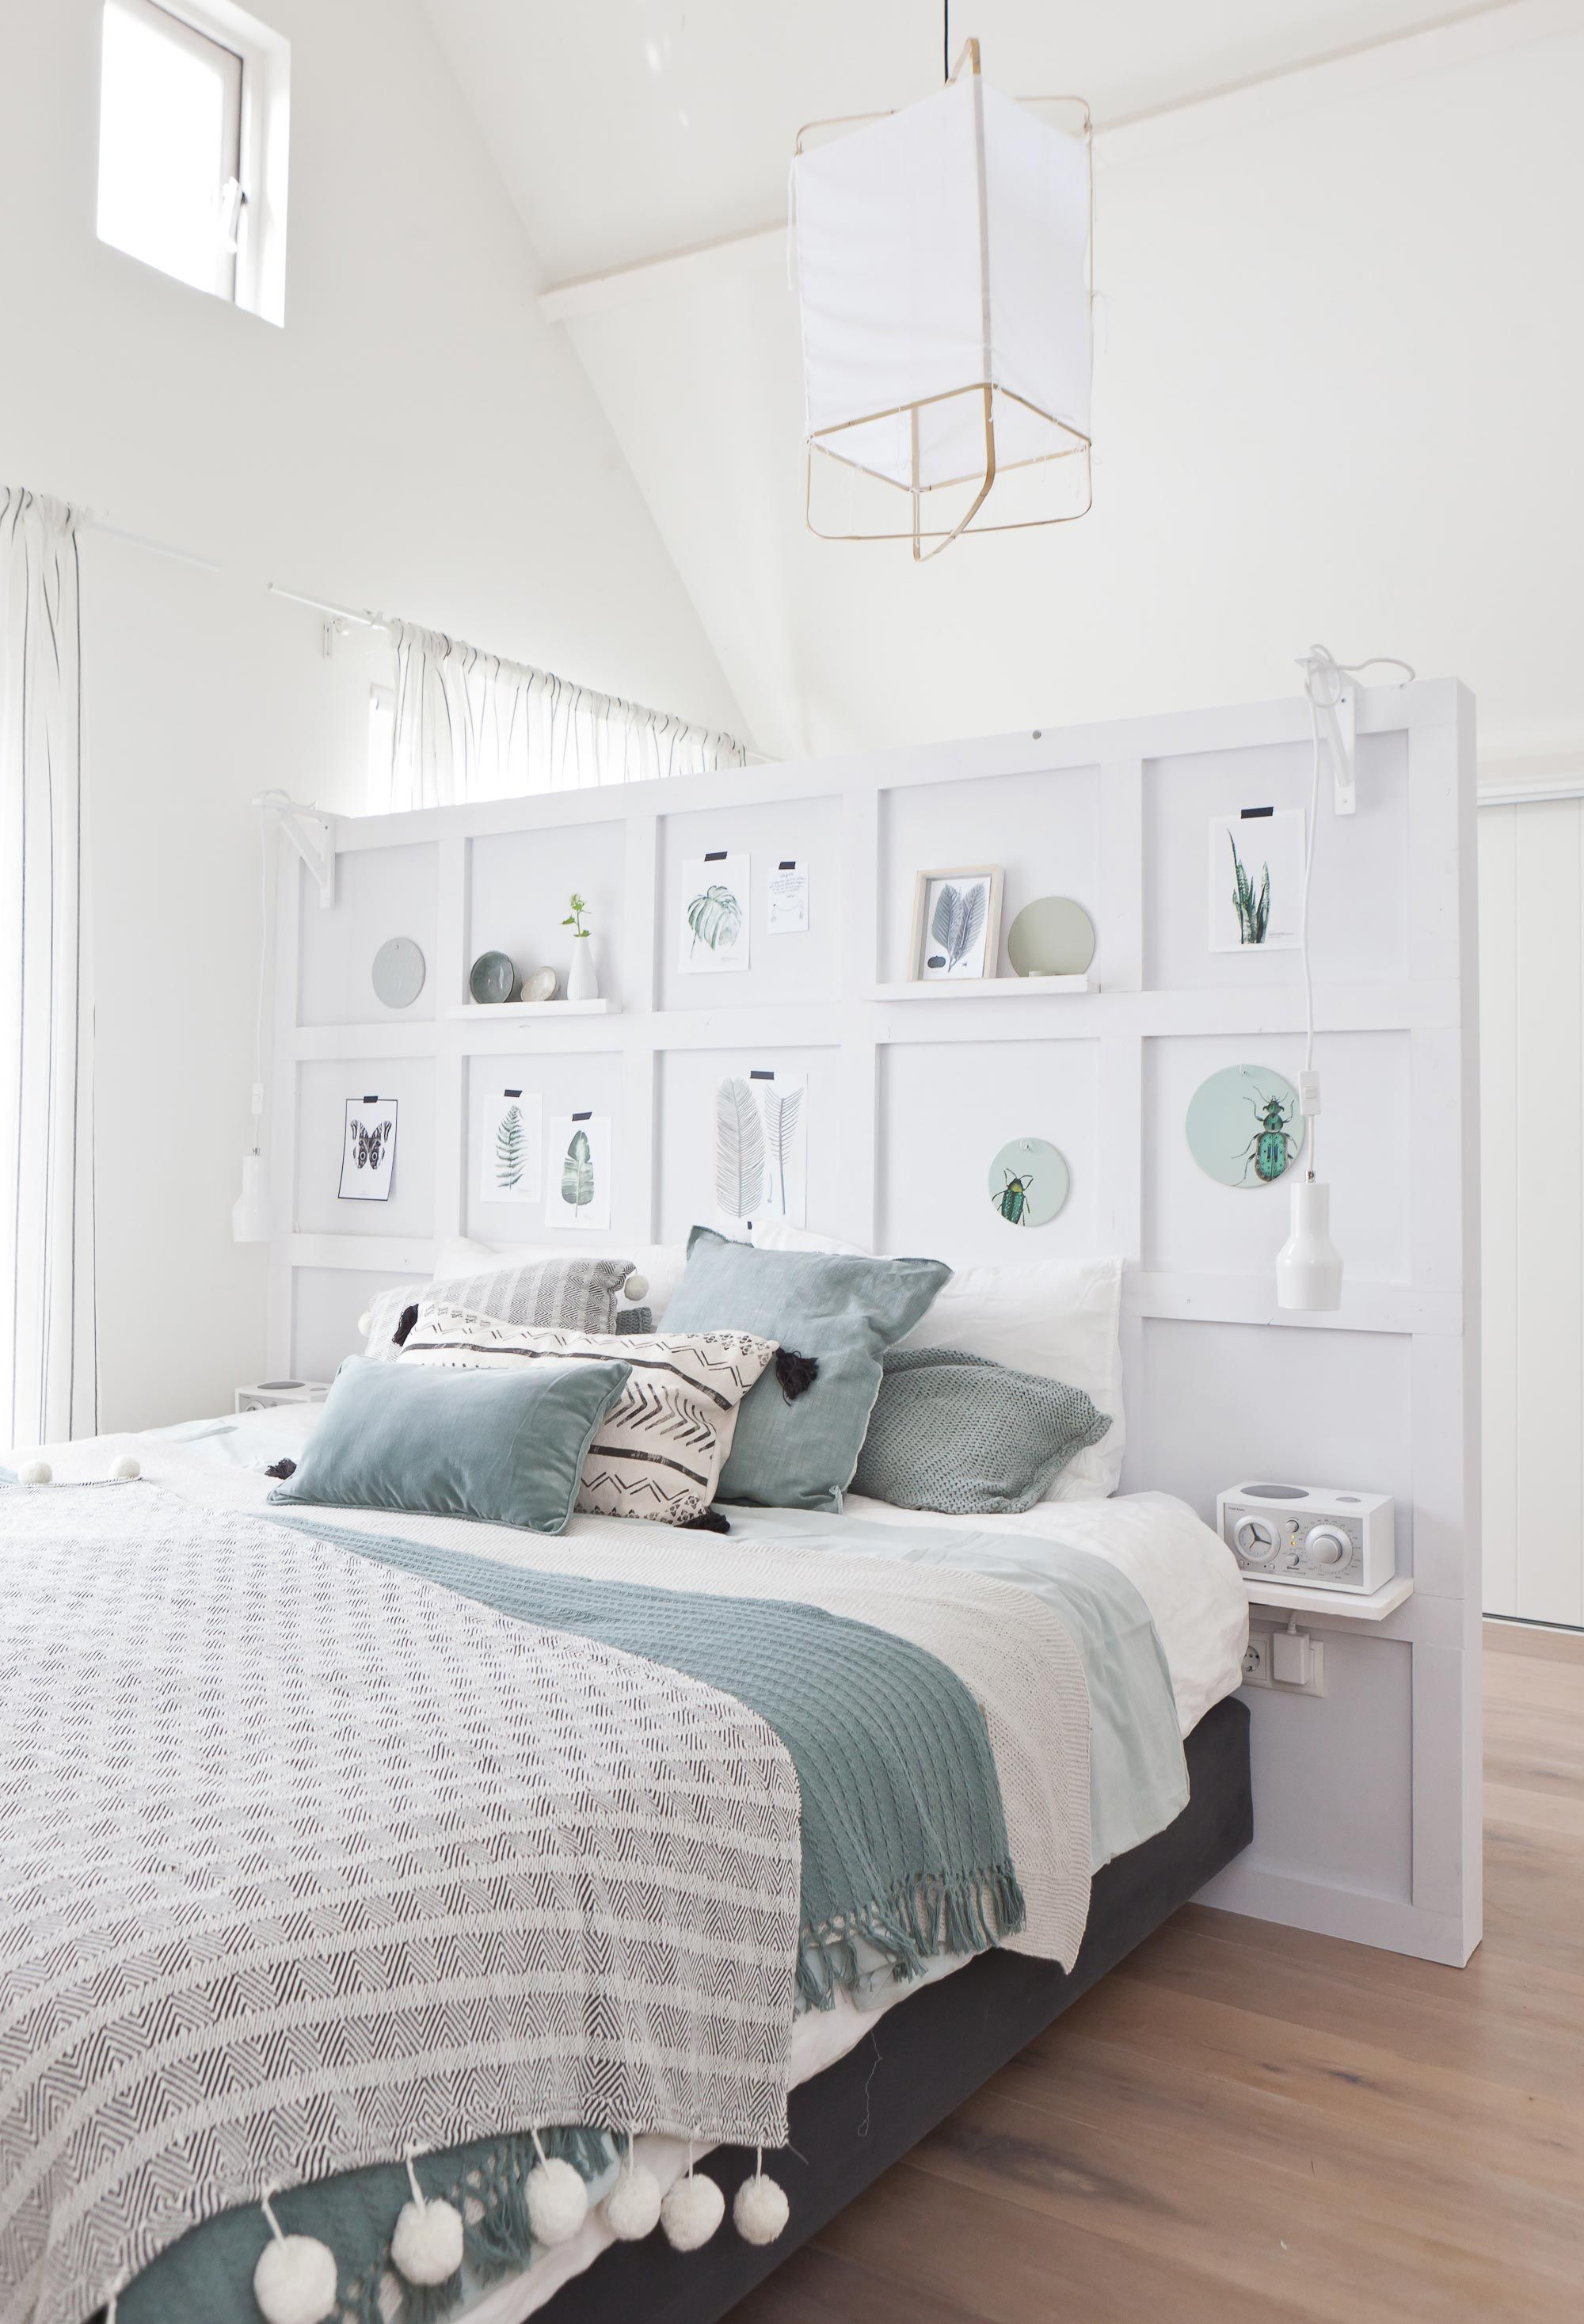 1000+ images about Kamer ideeën on Pinterest